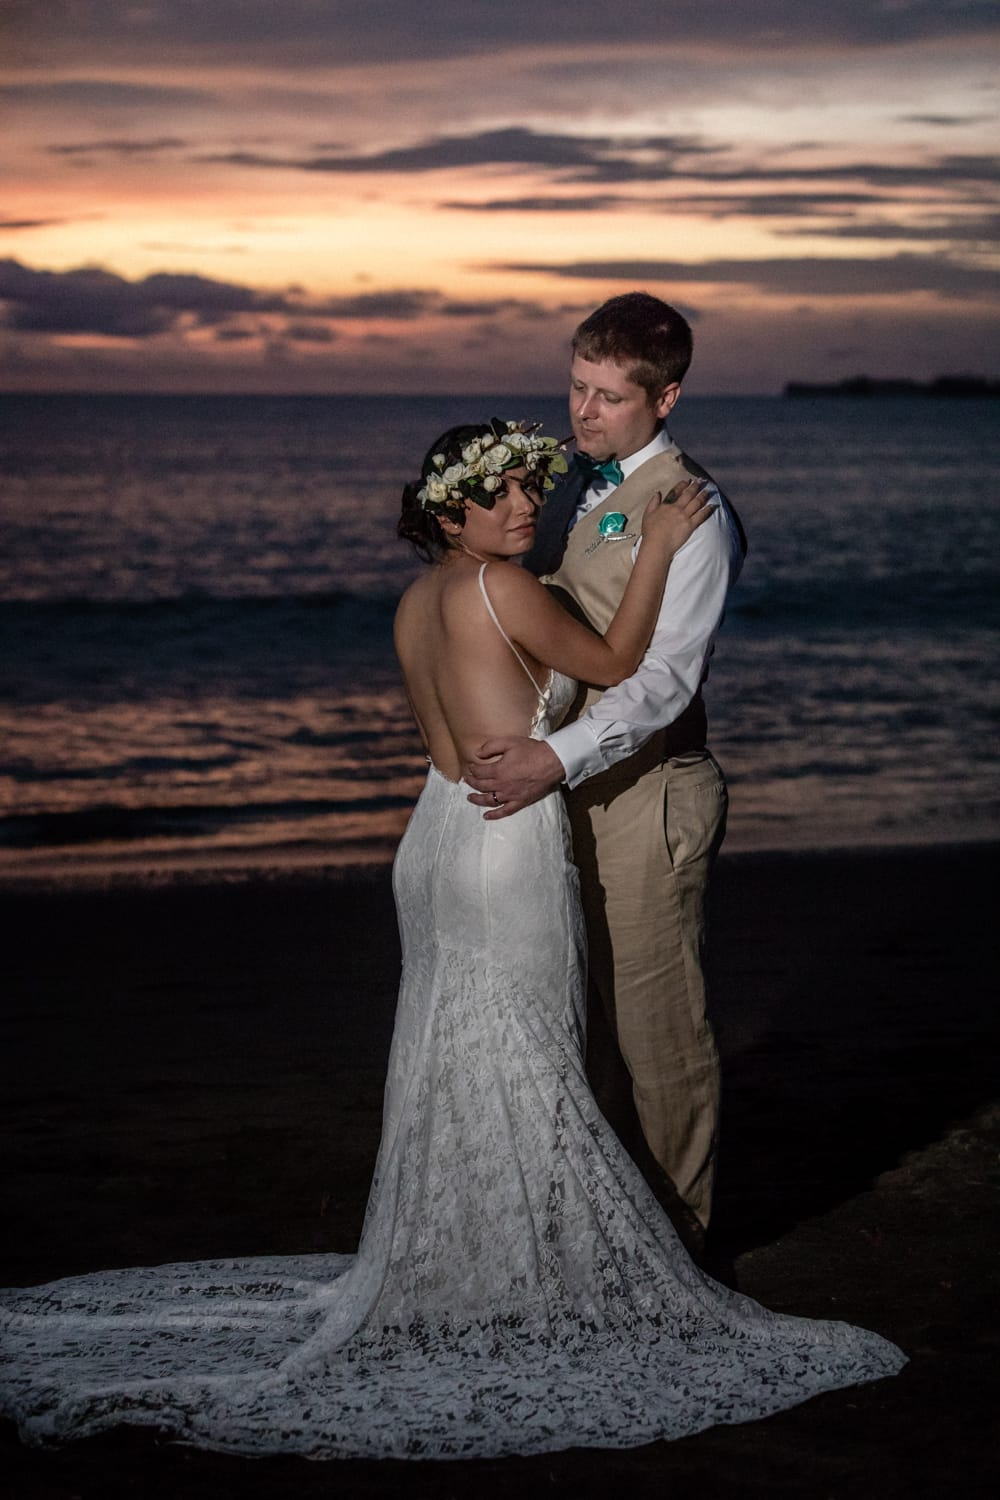 Bride wearing amazing wedding dress poses for portrait with groom on beach at  sunset.